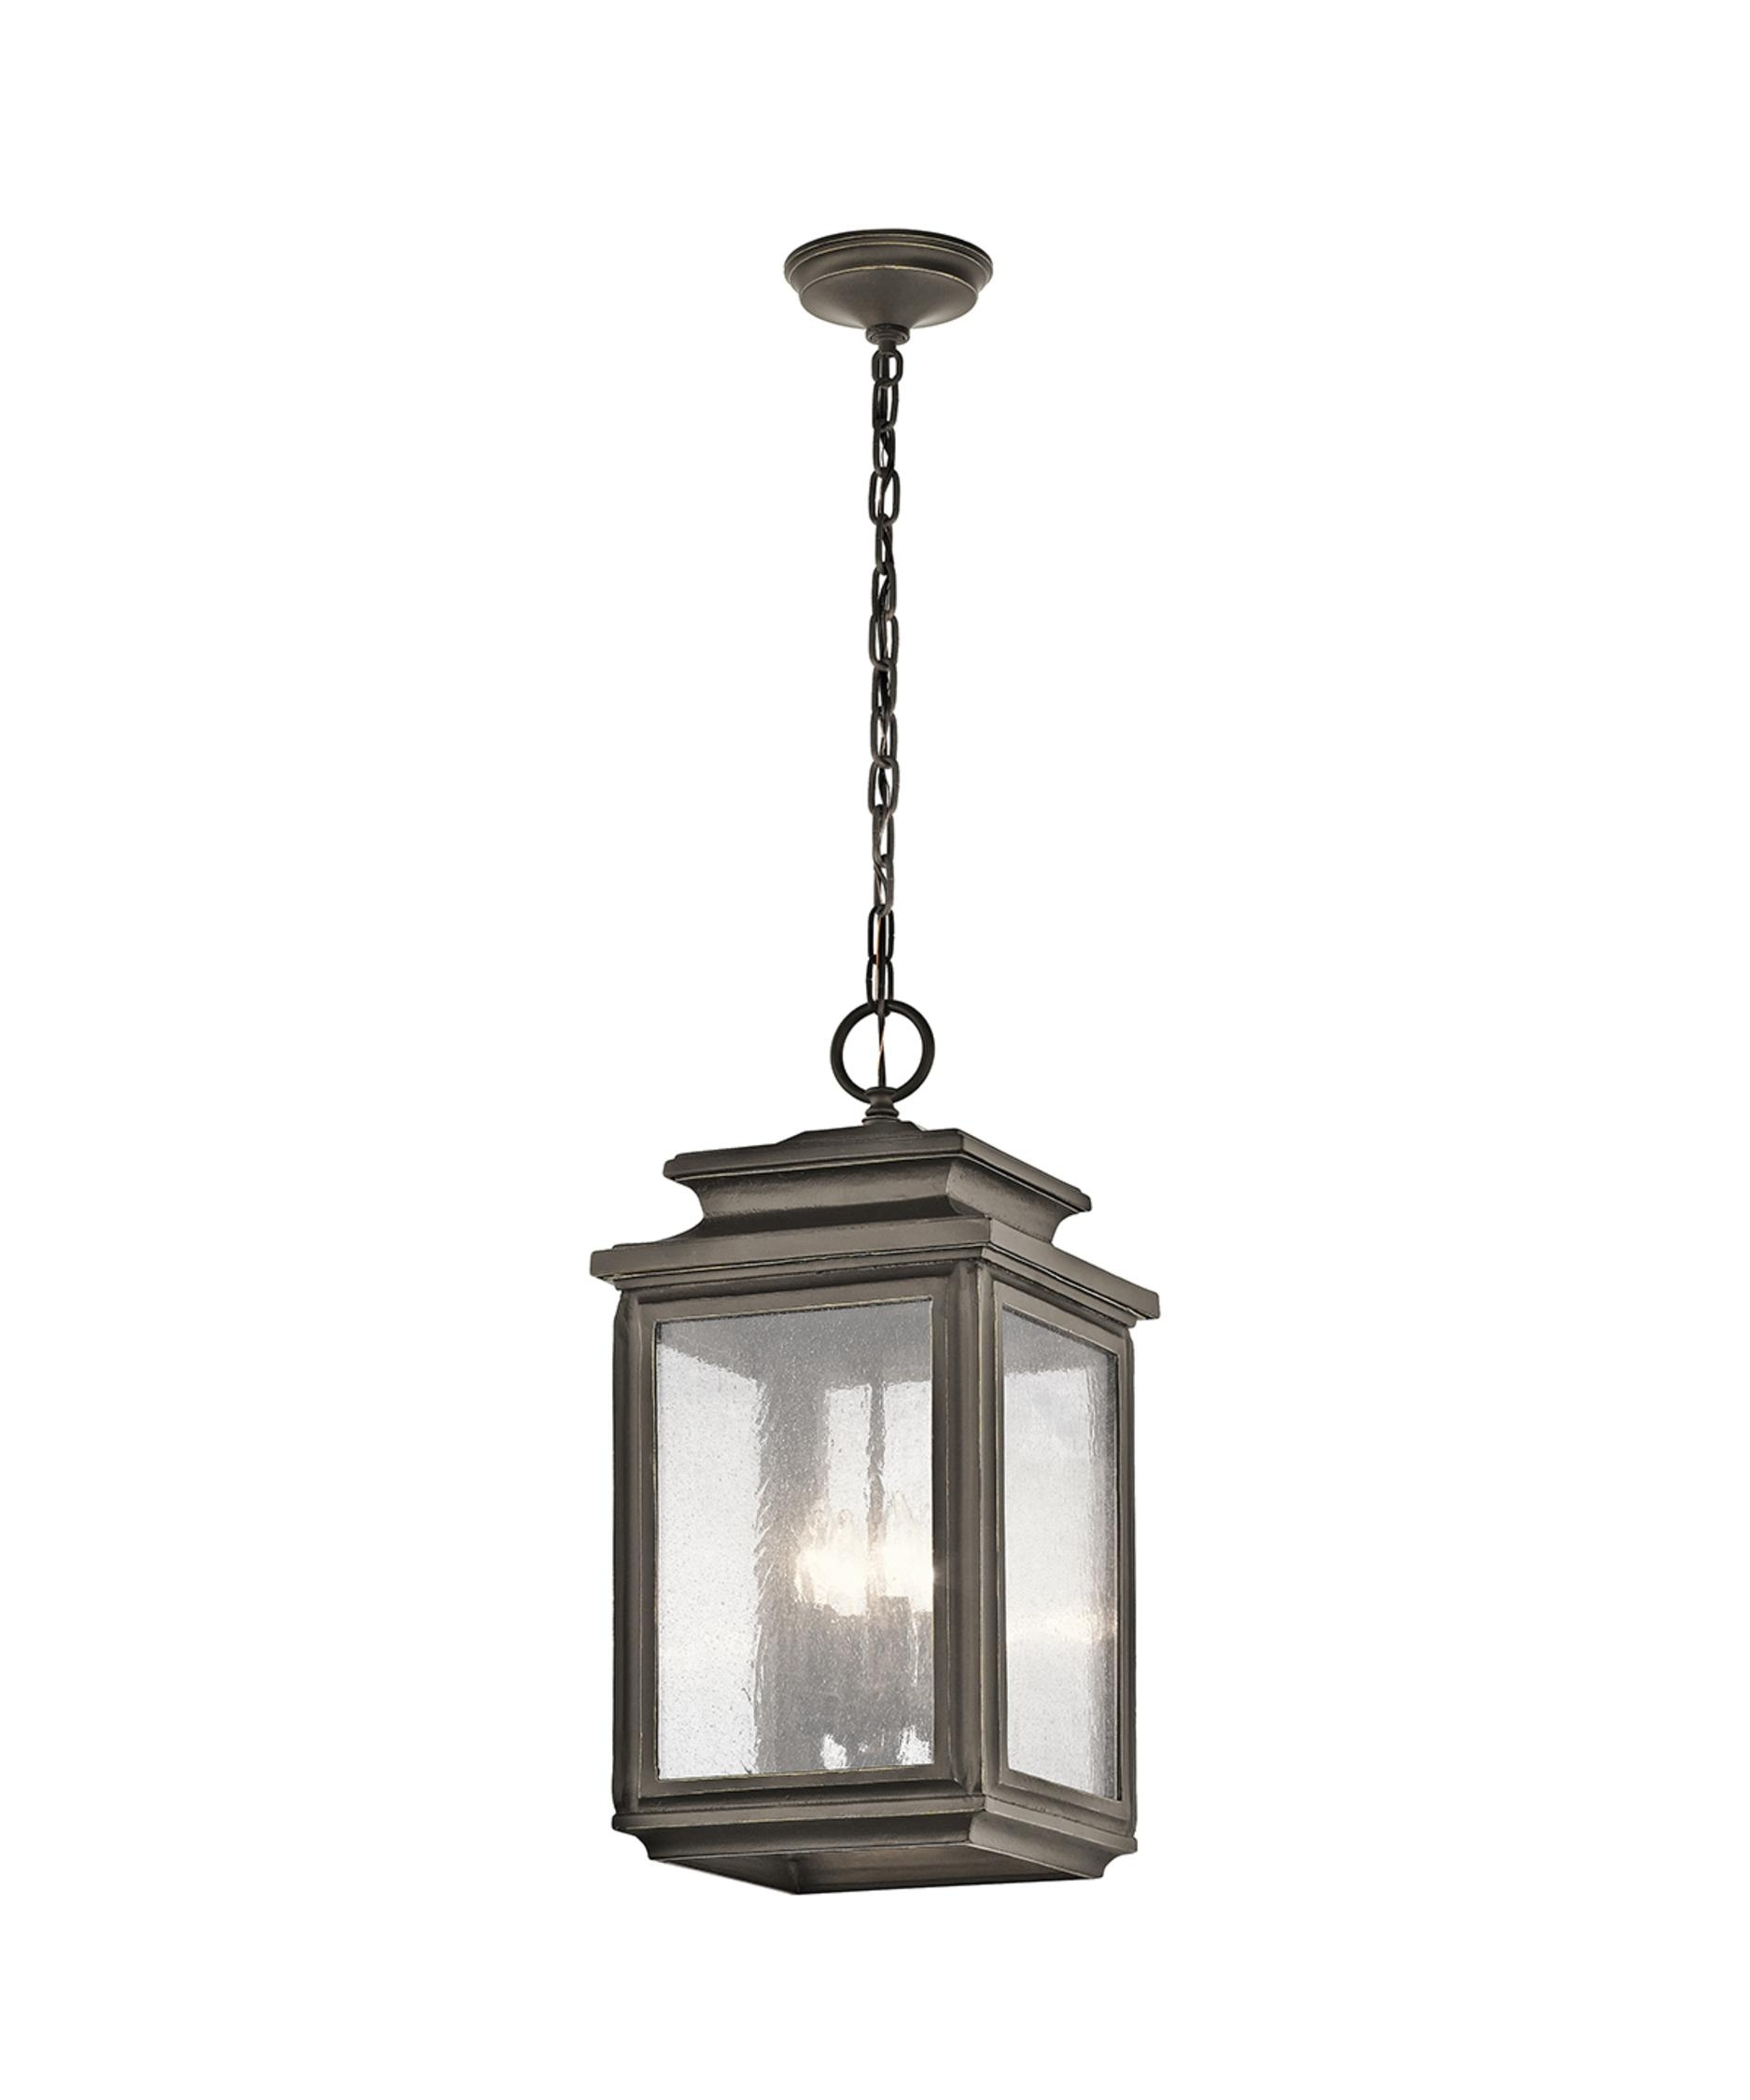 Outdoor Hanging Lanterns With Regard To Widely Used Kichler 49505 Wiscombe Park 11 Inch Wide 4 Light Outdoor Hanging (View 13 of 20)